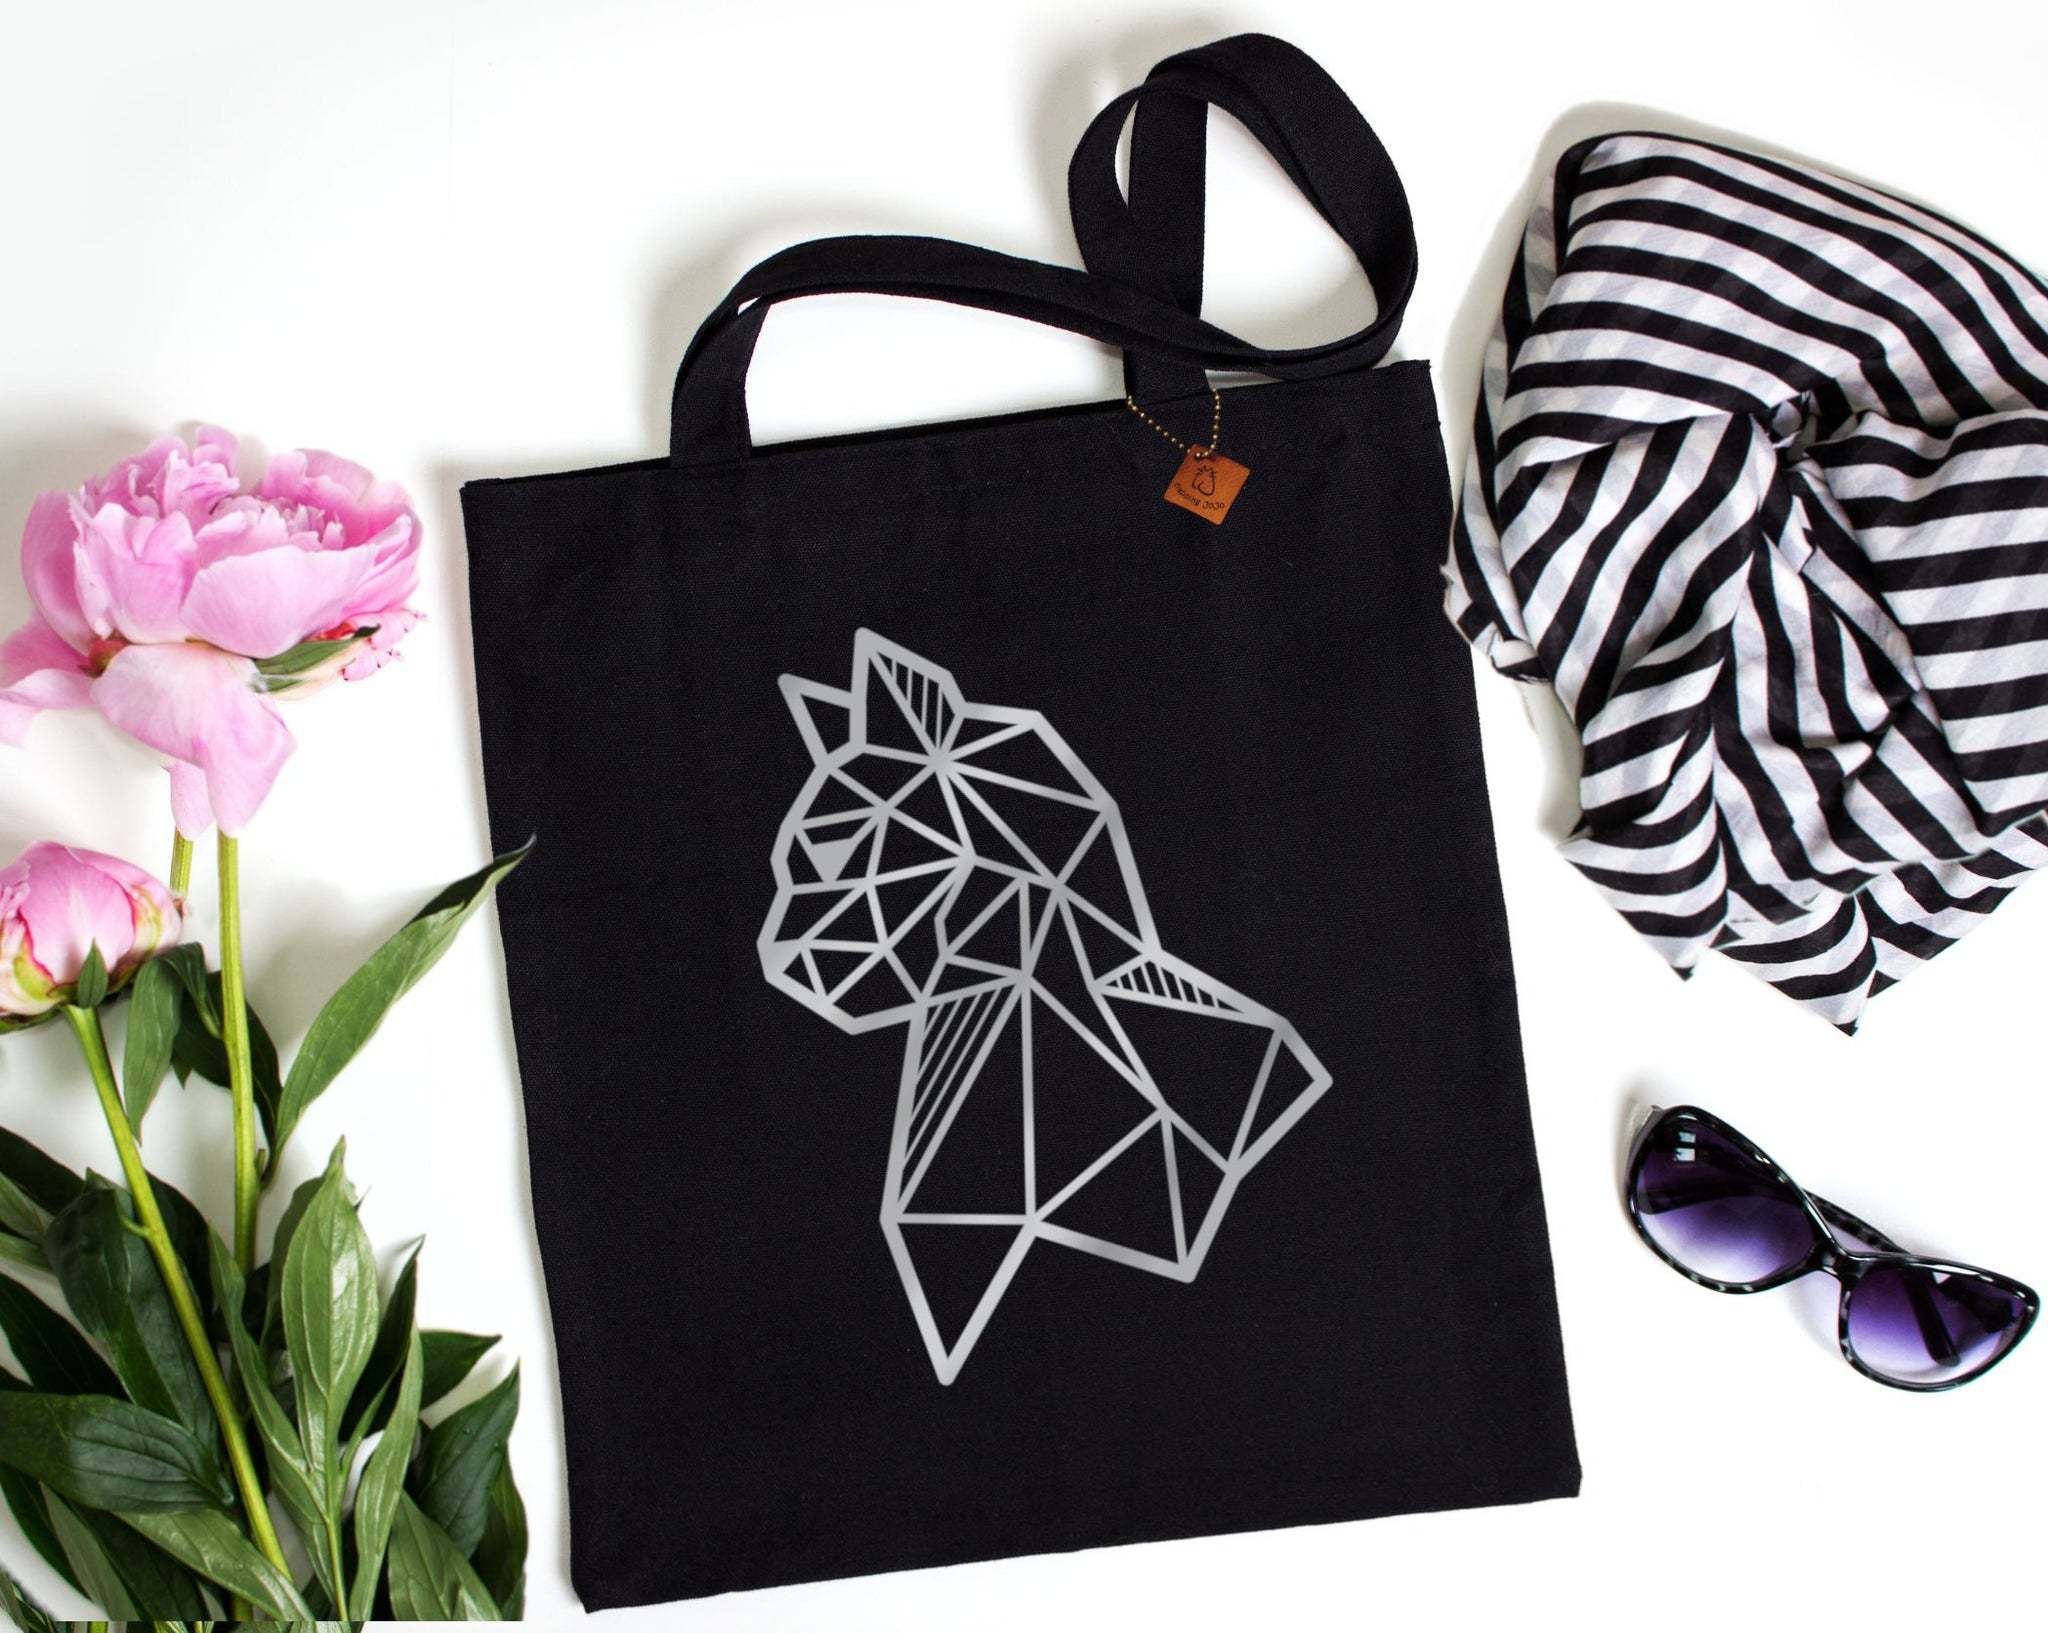 black tote bag with silver cat print